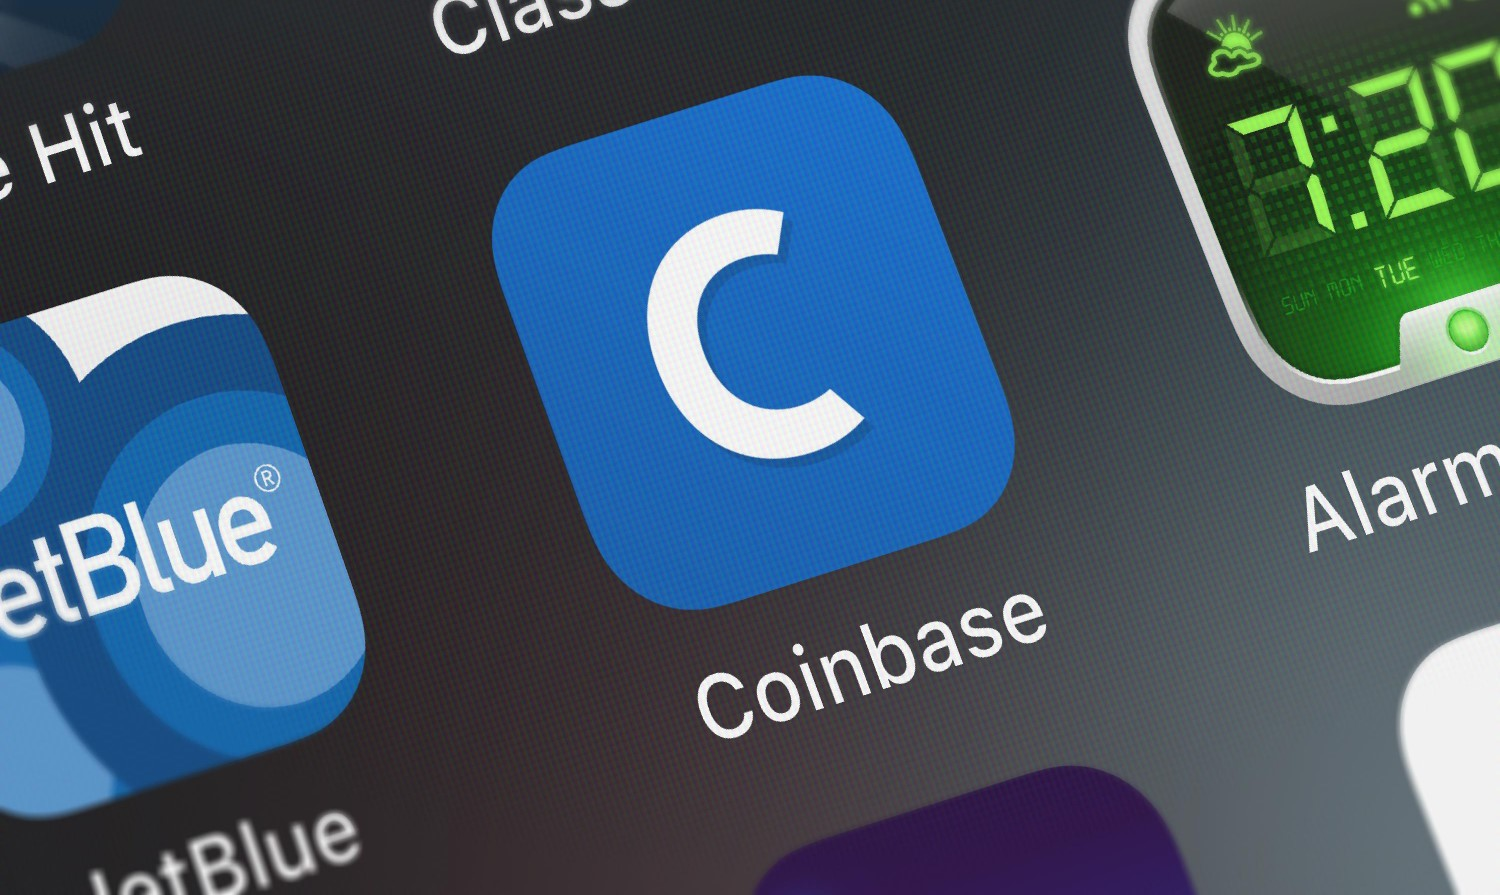 Business Group Led by Polychain, Coinbase Seeks to Get Forward on Staking Rules - CoinDesk